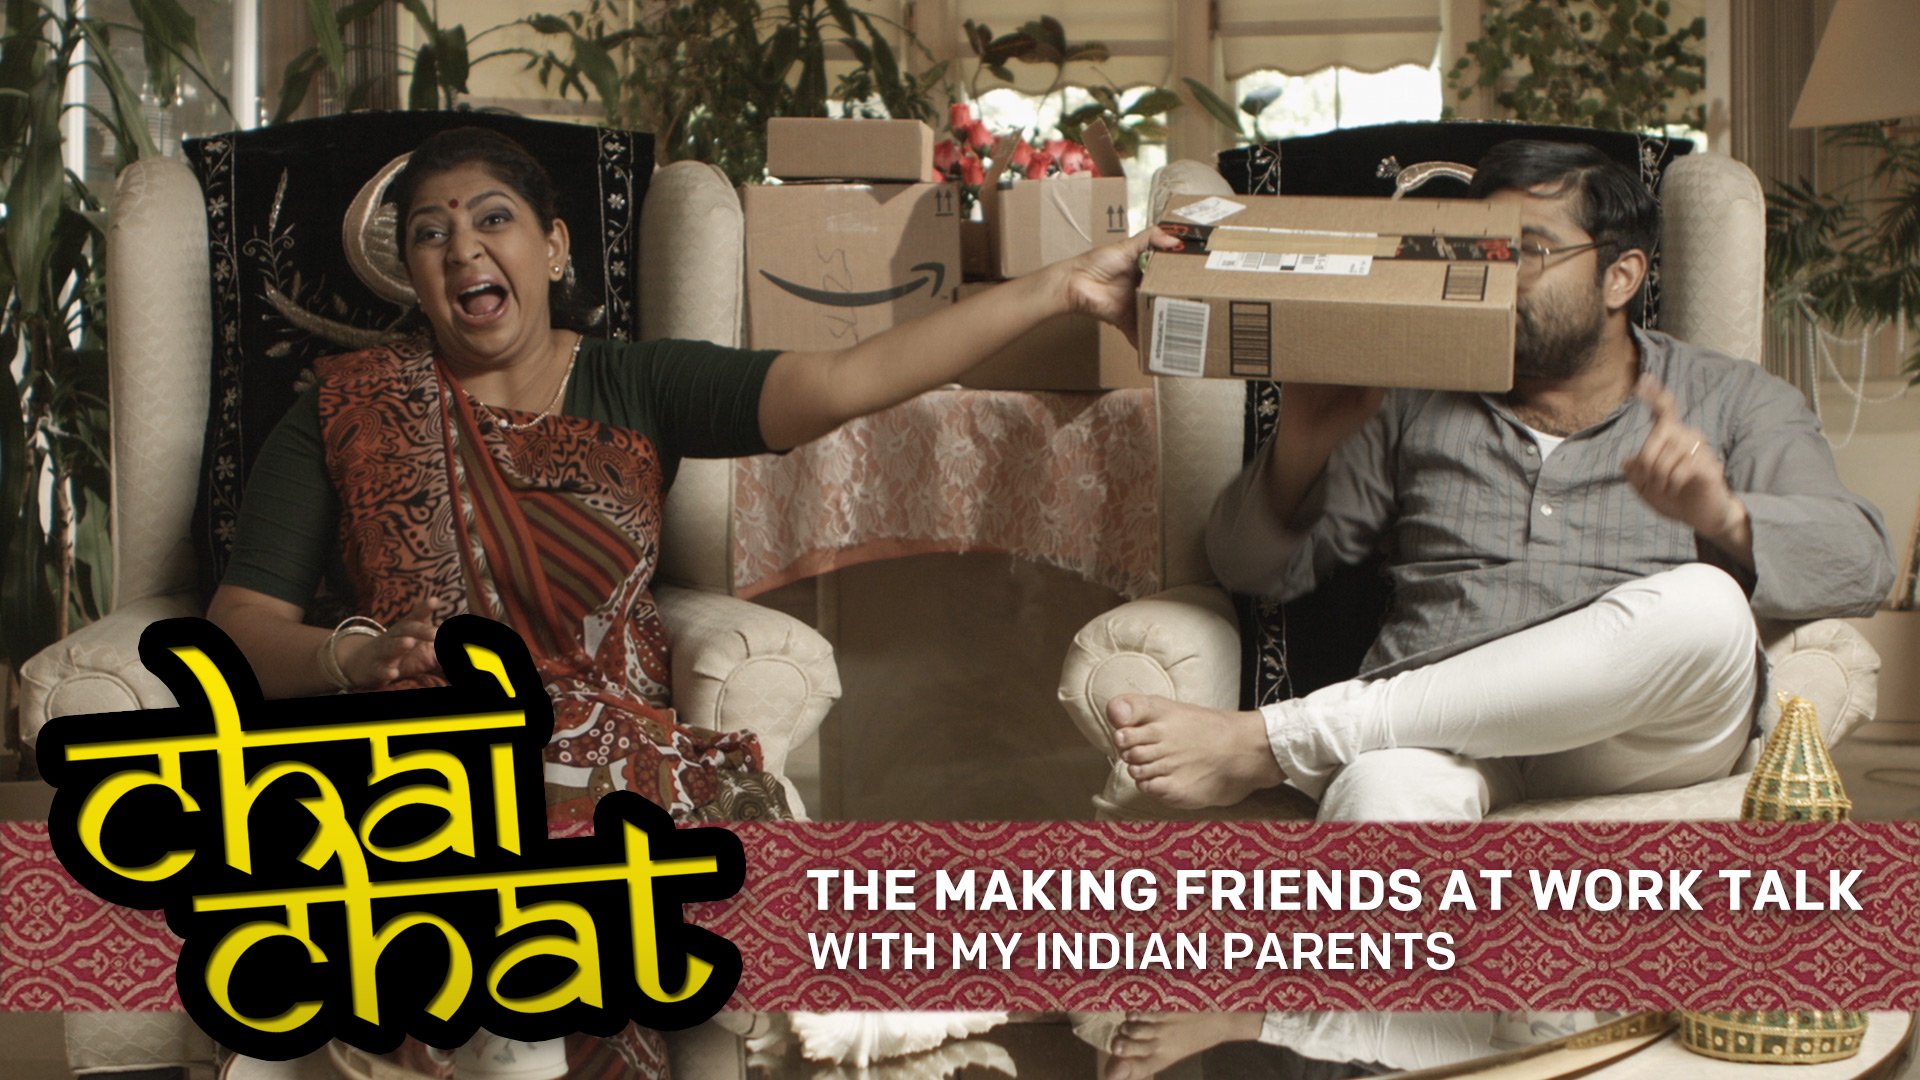 Chai Chat: The Making Friends At Work Talk - With My Indian Parents